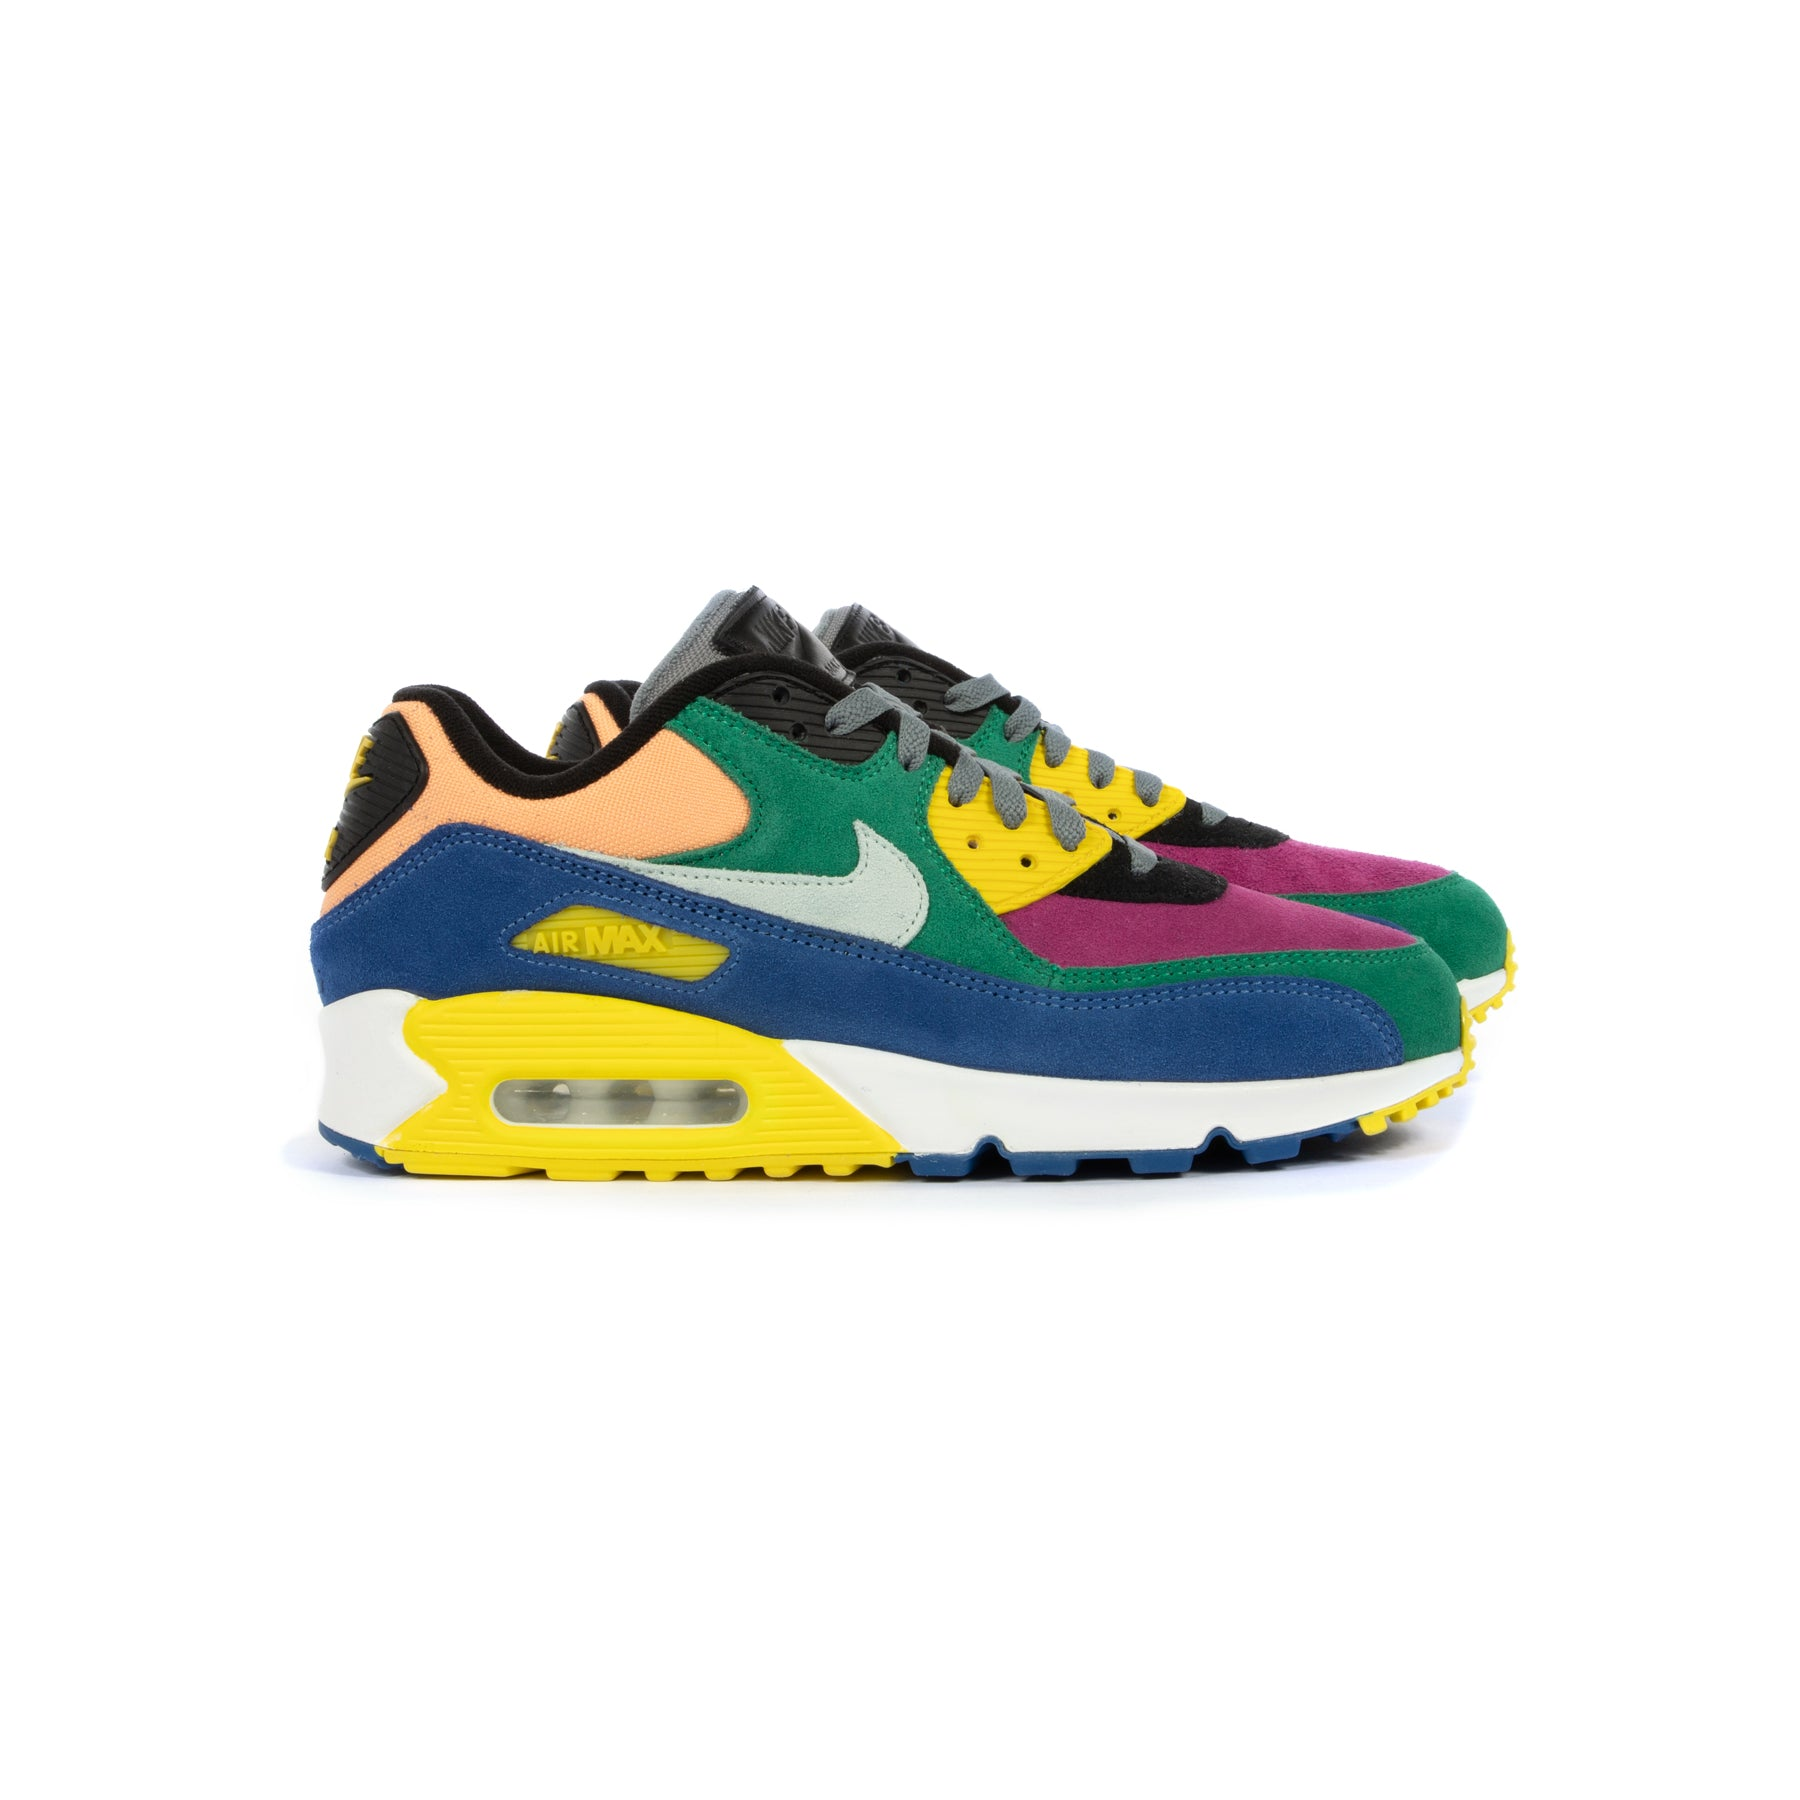 ConceptsIntl | Nike Air Max 90 QS (Lucid GreenBarely Grey